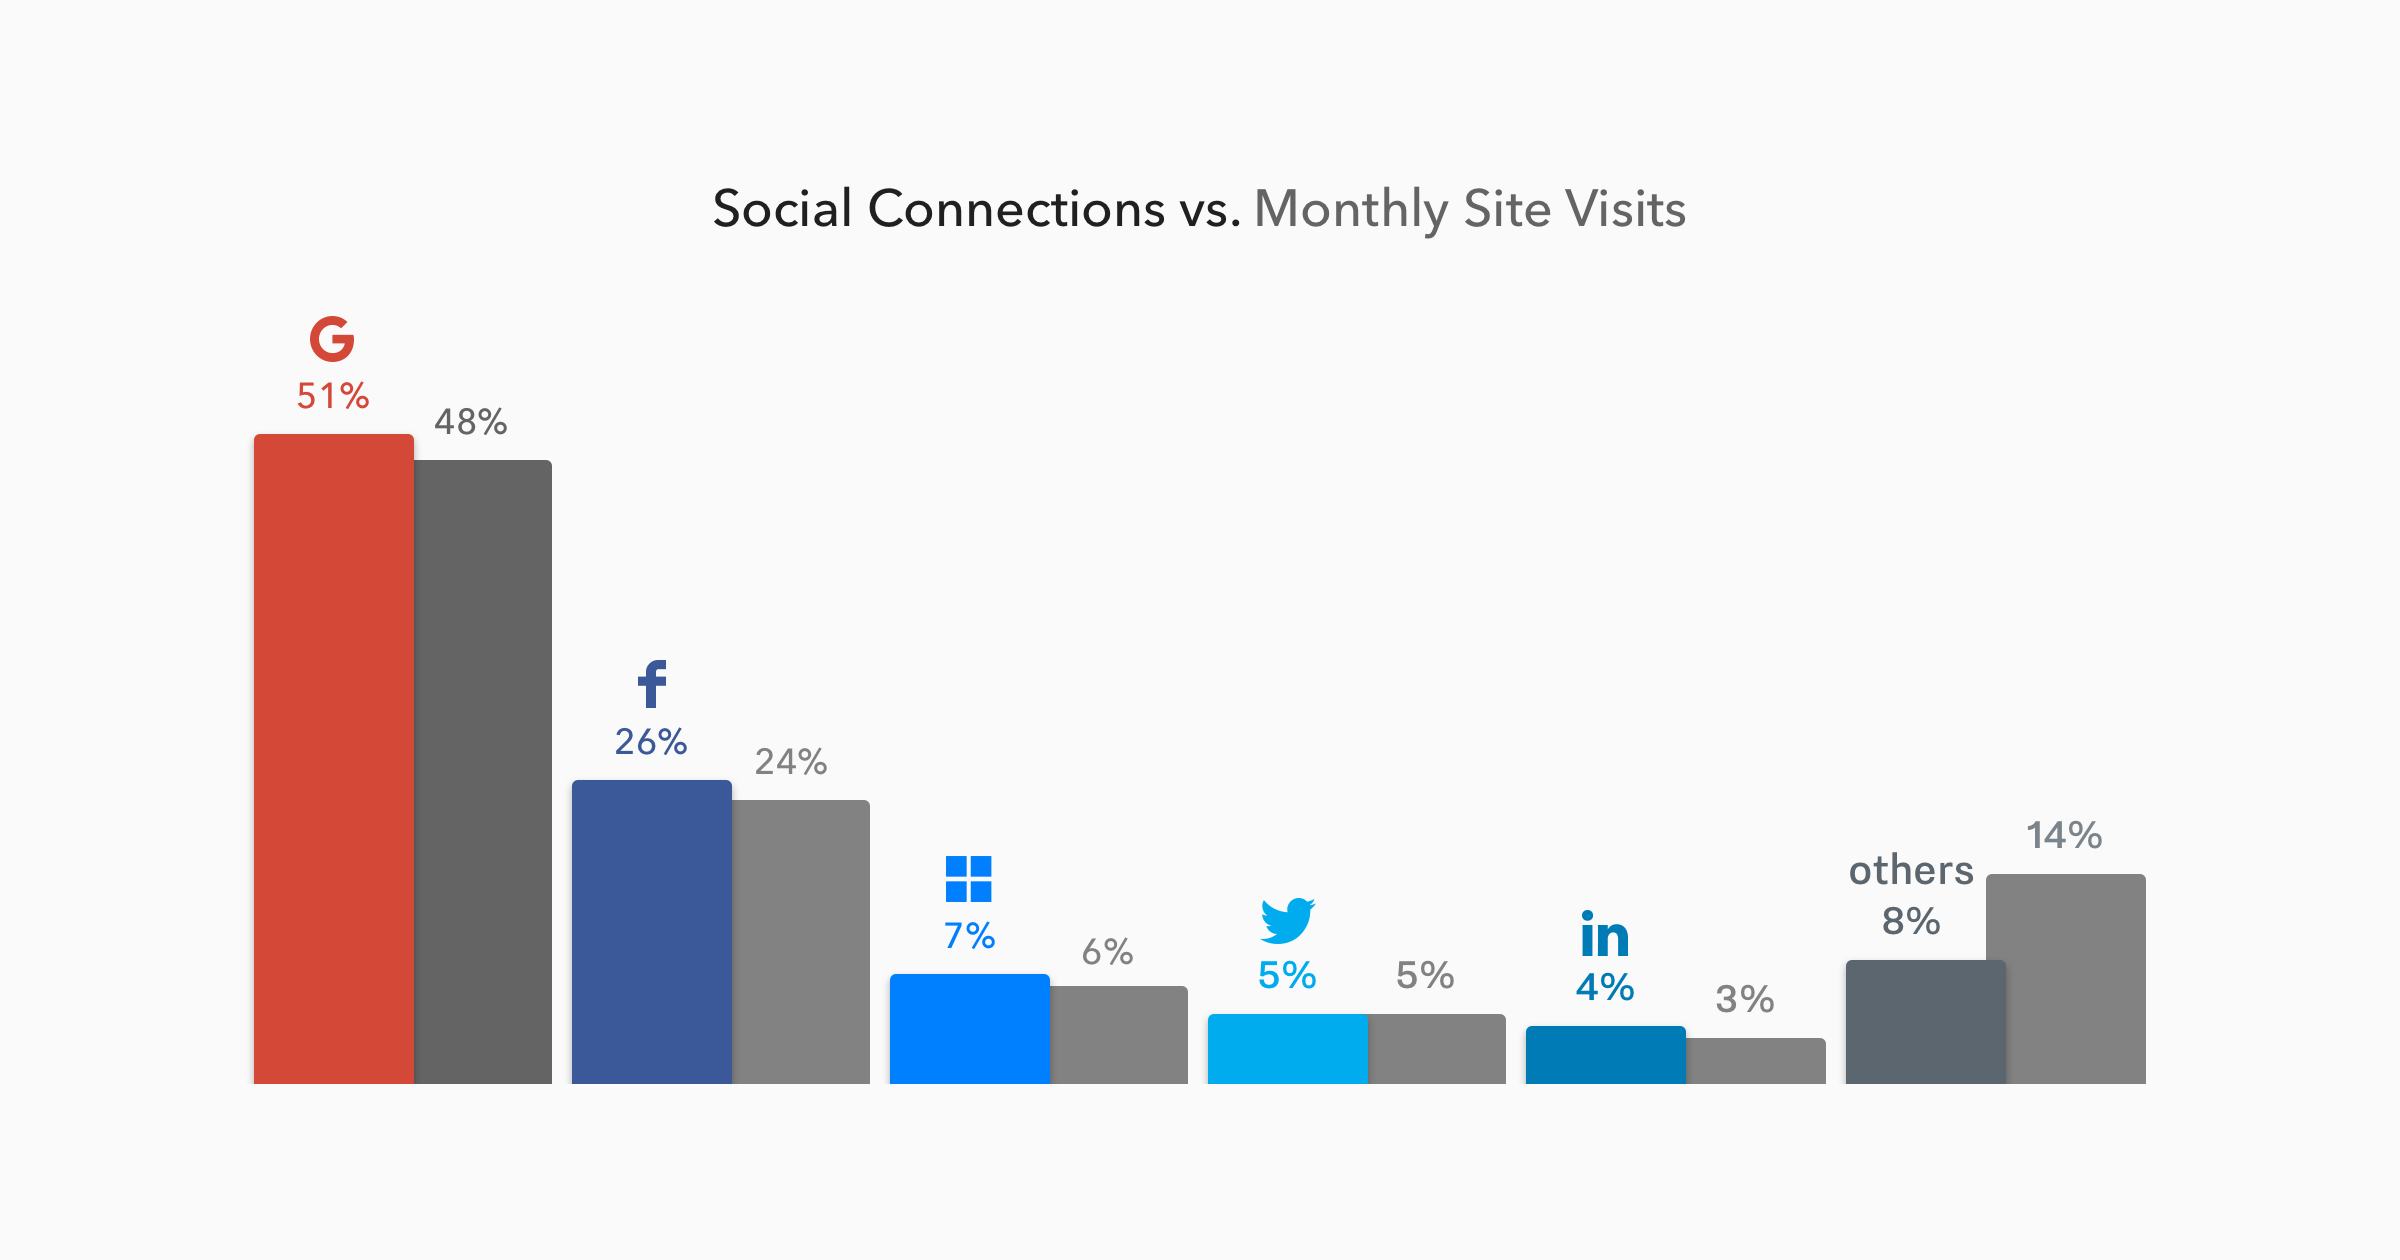 Social Connections vs Monthly Site Visits